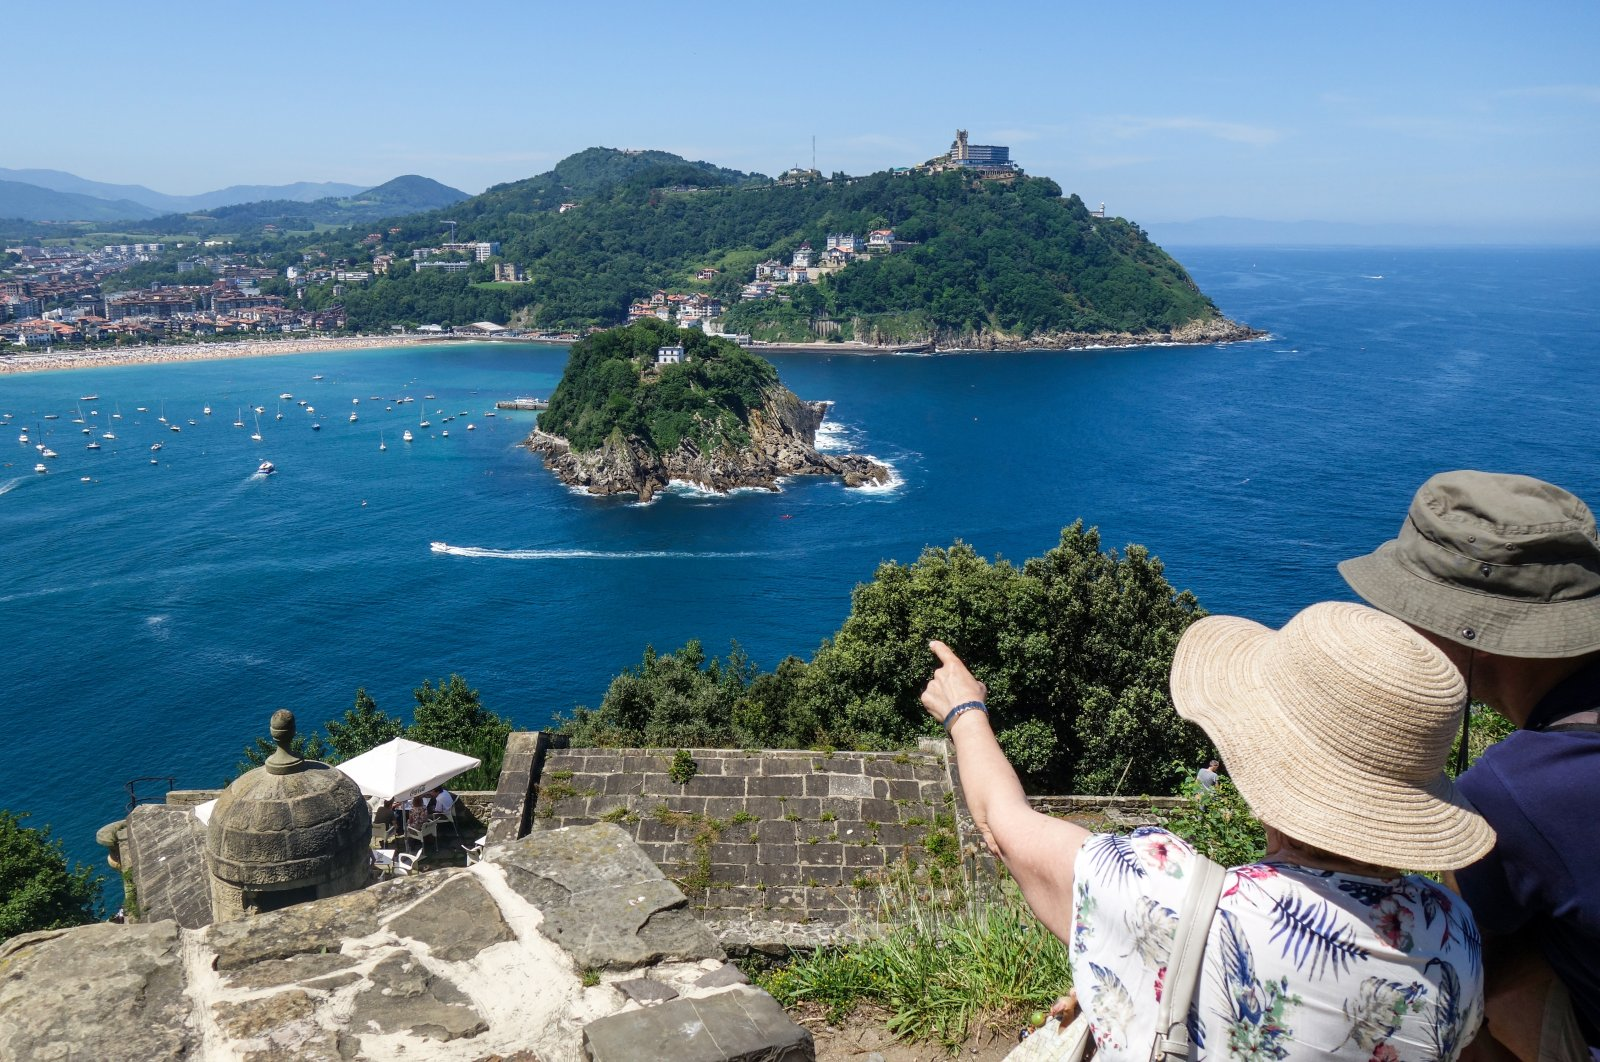 The views from the hills of Igueldo and Urgull in Spain's San Sebastian are as fantastic as the promenade along the Bay of Shells. (DPA Photo)